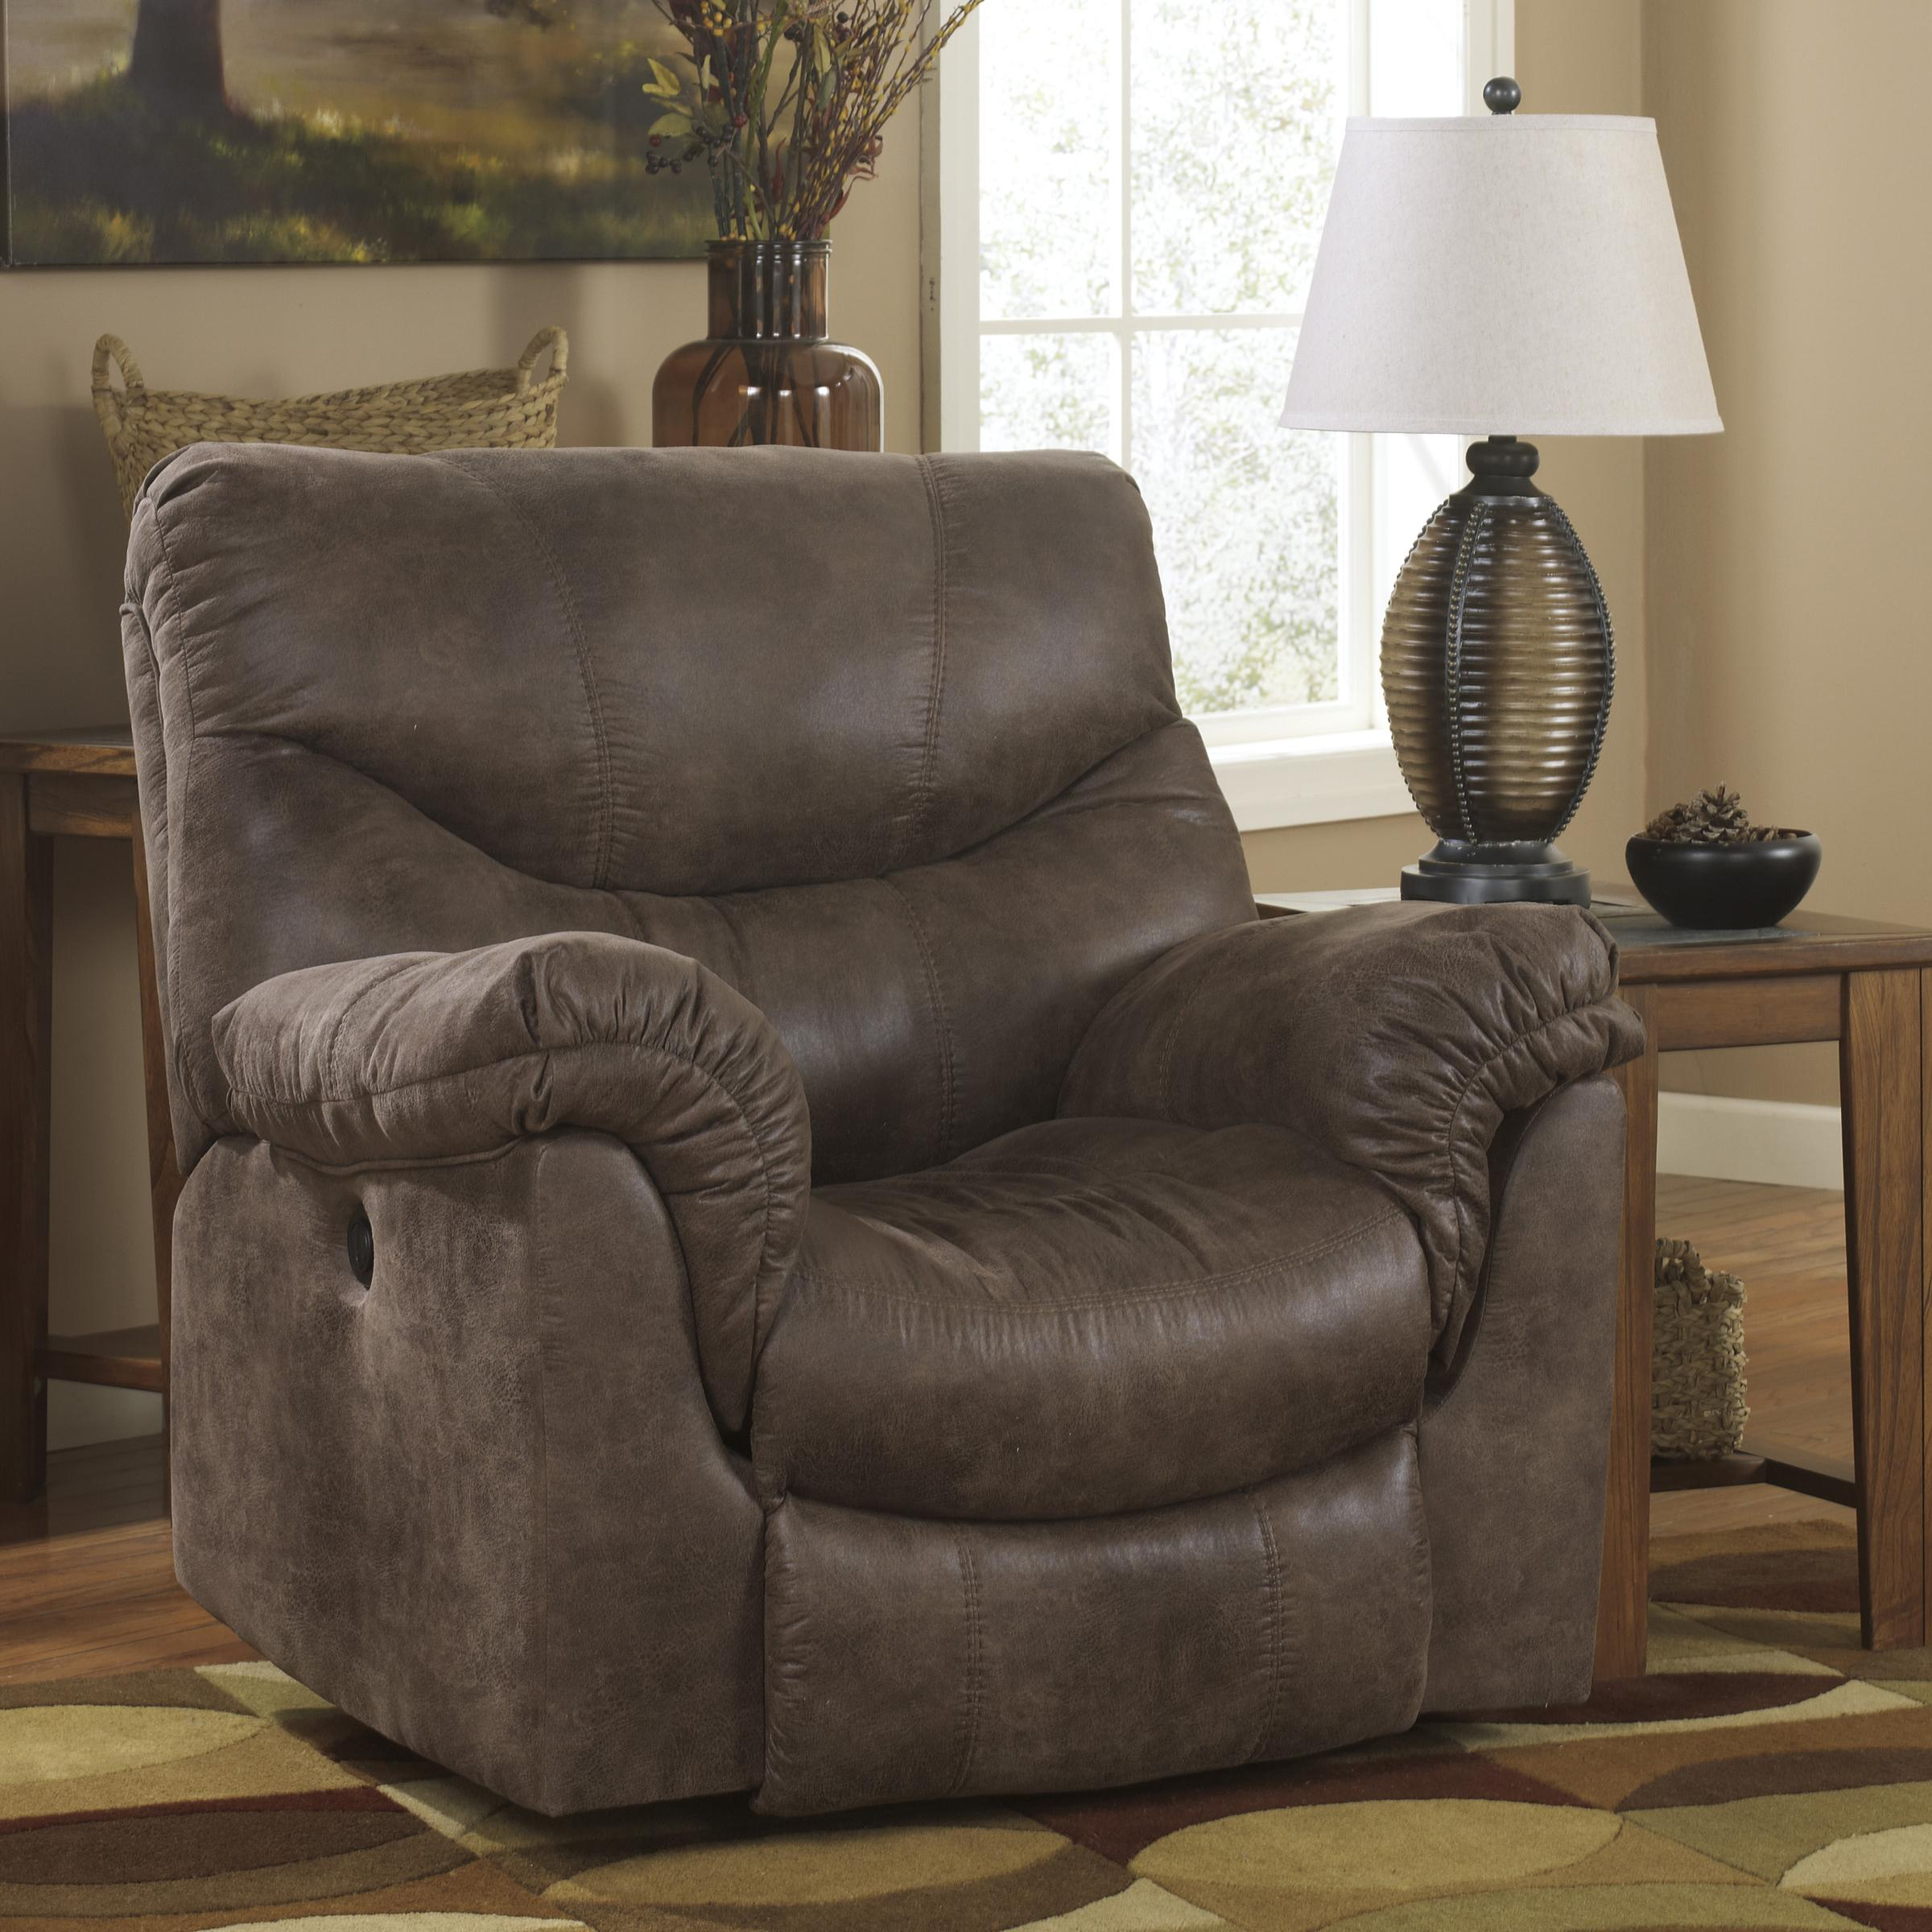 Alzena - Gunsmoke Rocker Recliner by StyleLine at EFO Furniture Outlet